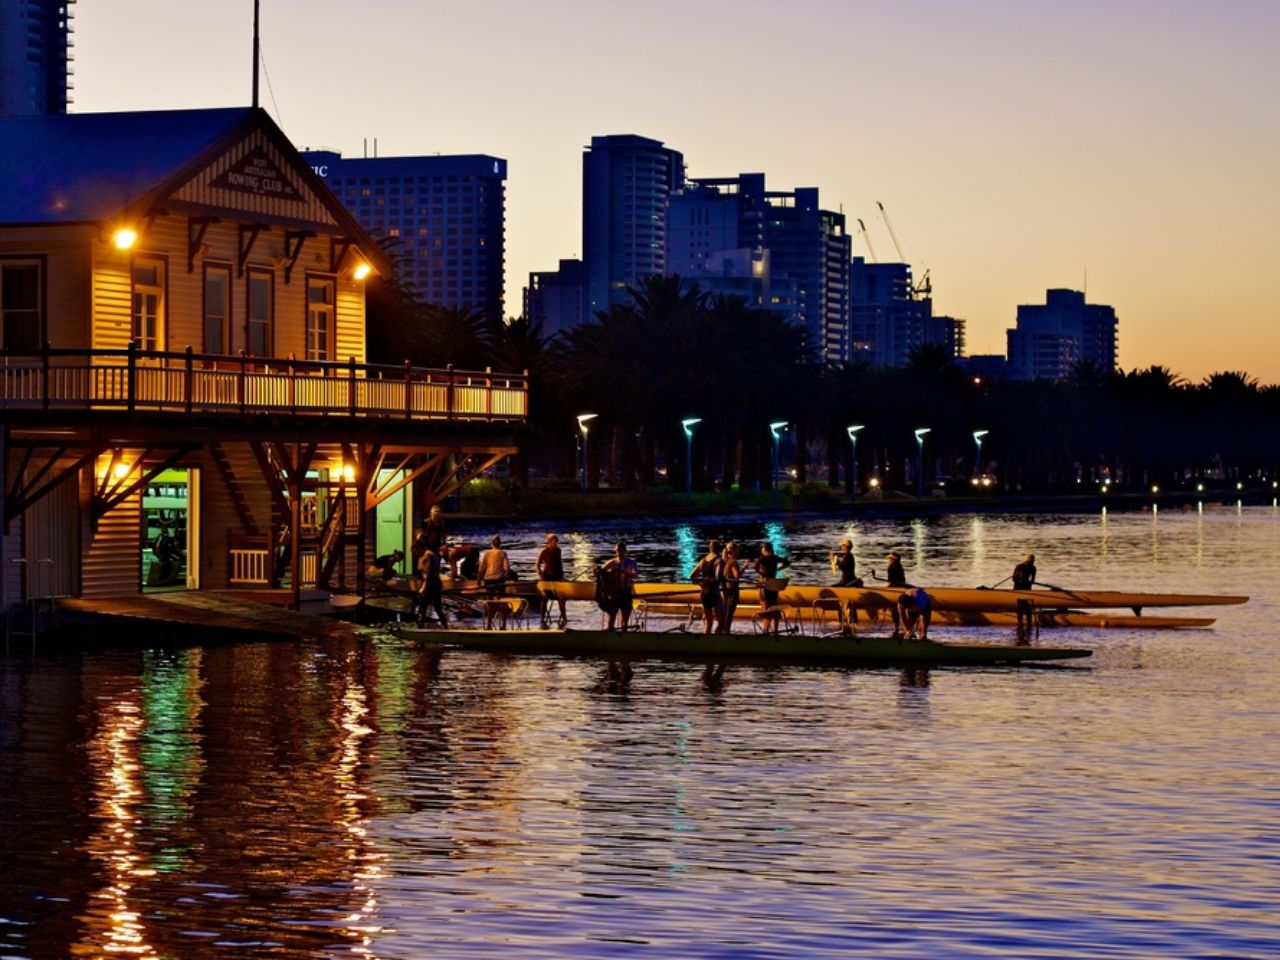 Venue On The Banks Of the Swan River at Dusk